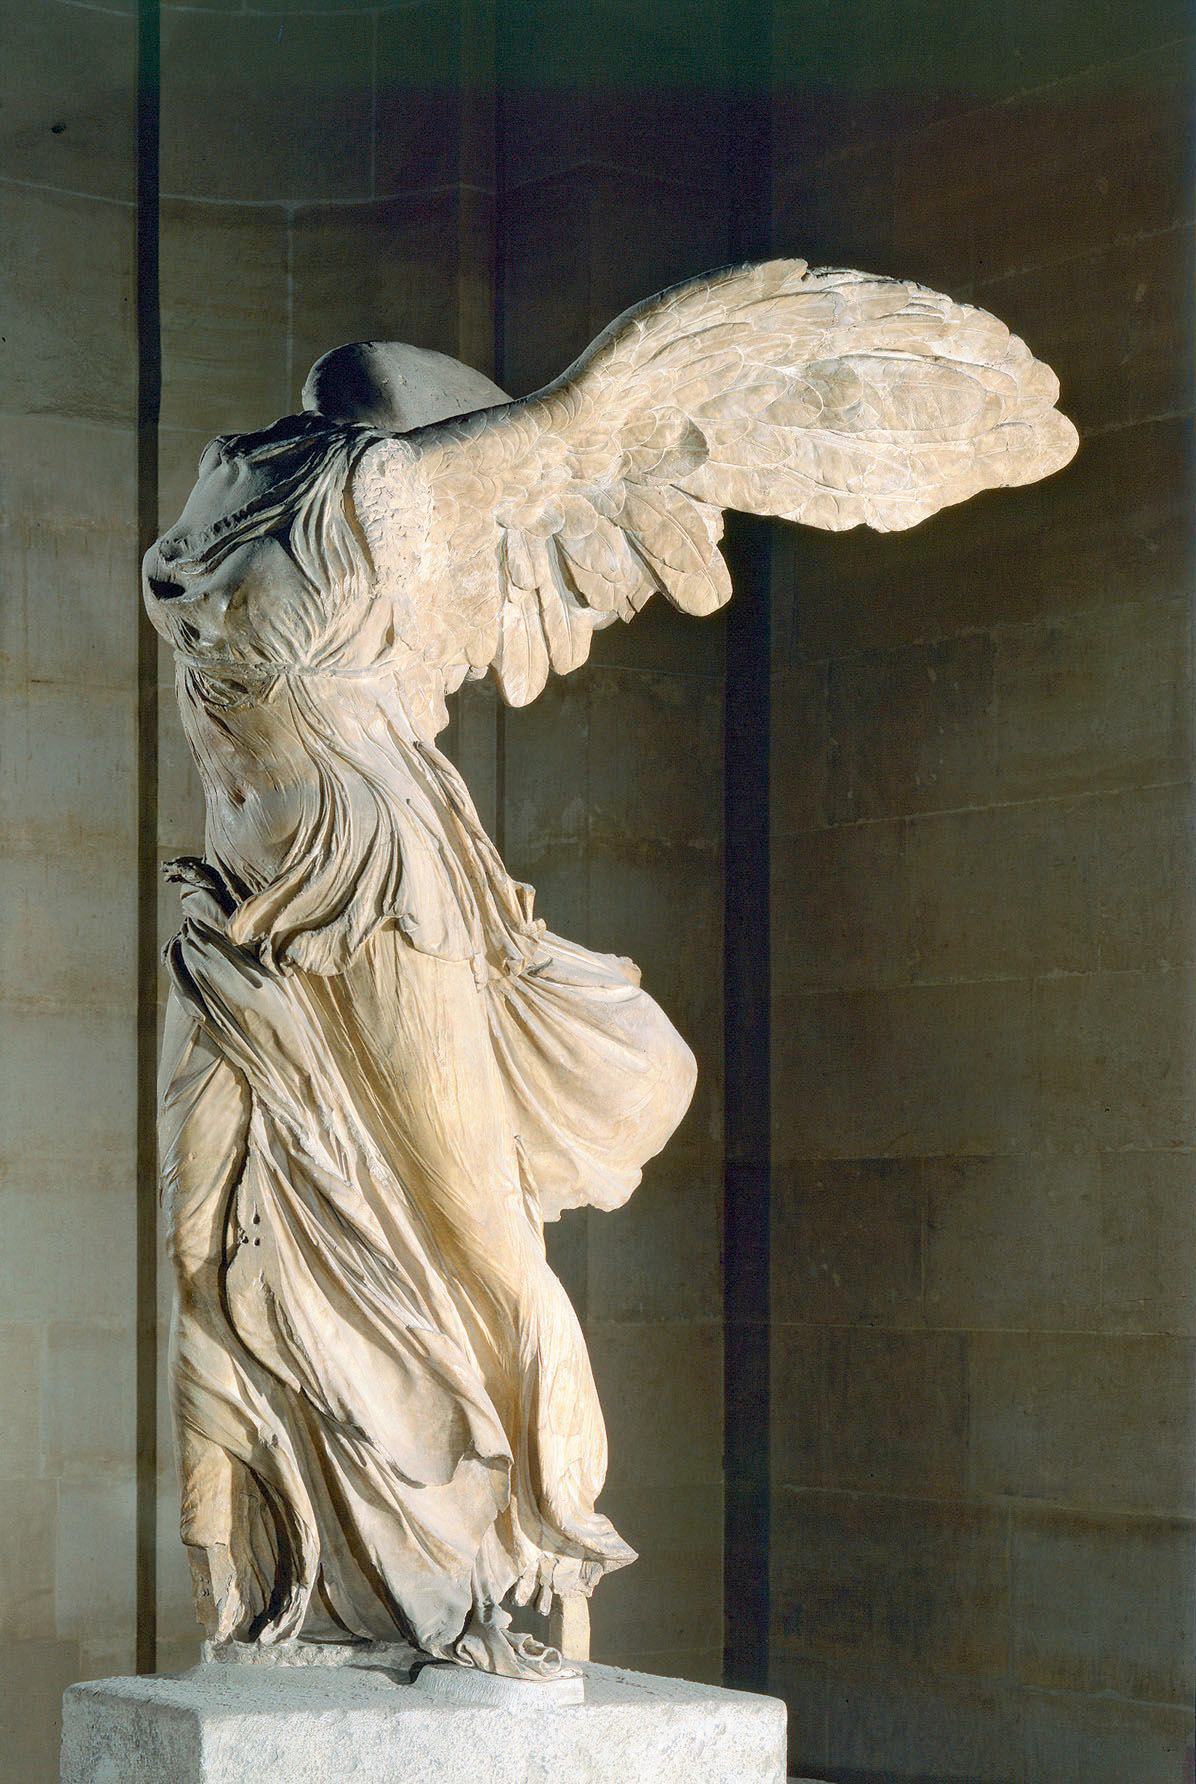 The Louvre - It is the Winged Victory of Samothrace. It's from the second  century BCE, and it represents the Greek god of victory, Nike.